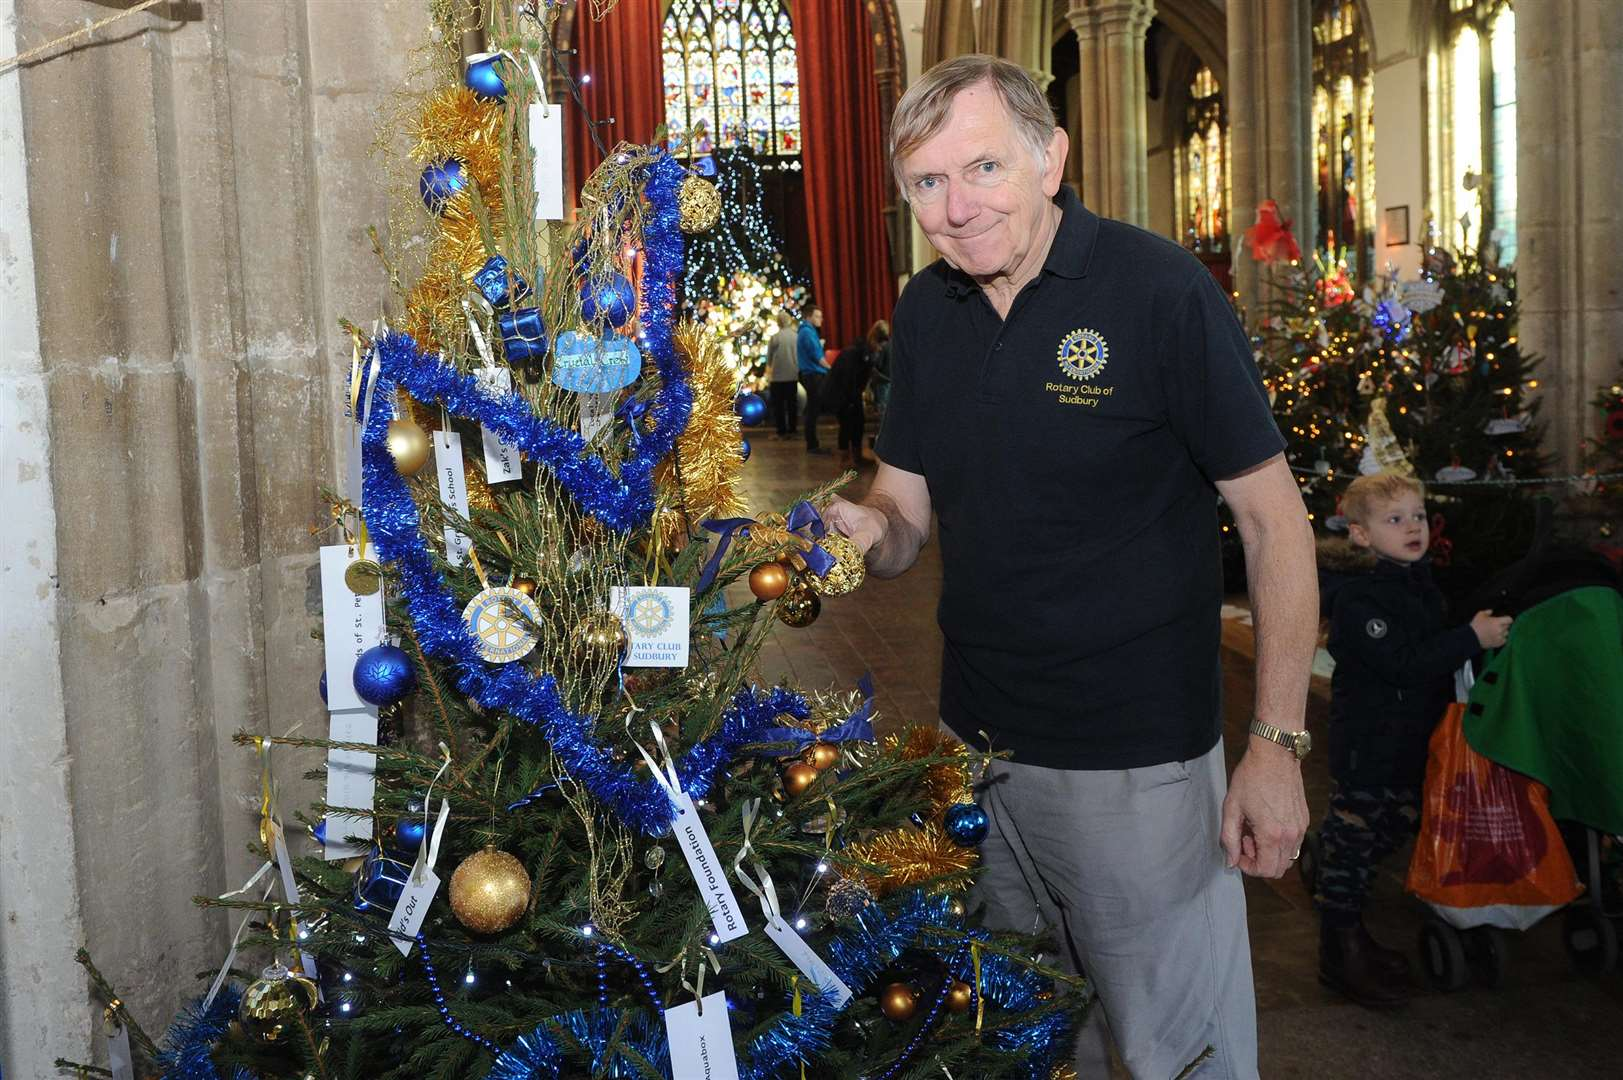 A Christmas tree festival has been staged at St Peter's, organised by Sudbury Rotary Club...Pictured: David Taylor of Sudbury Rotary Club with their Christmas tree...PICTURE: Mecha Morton. (5877117)